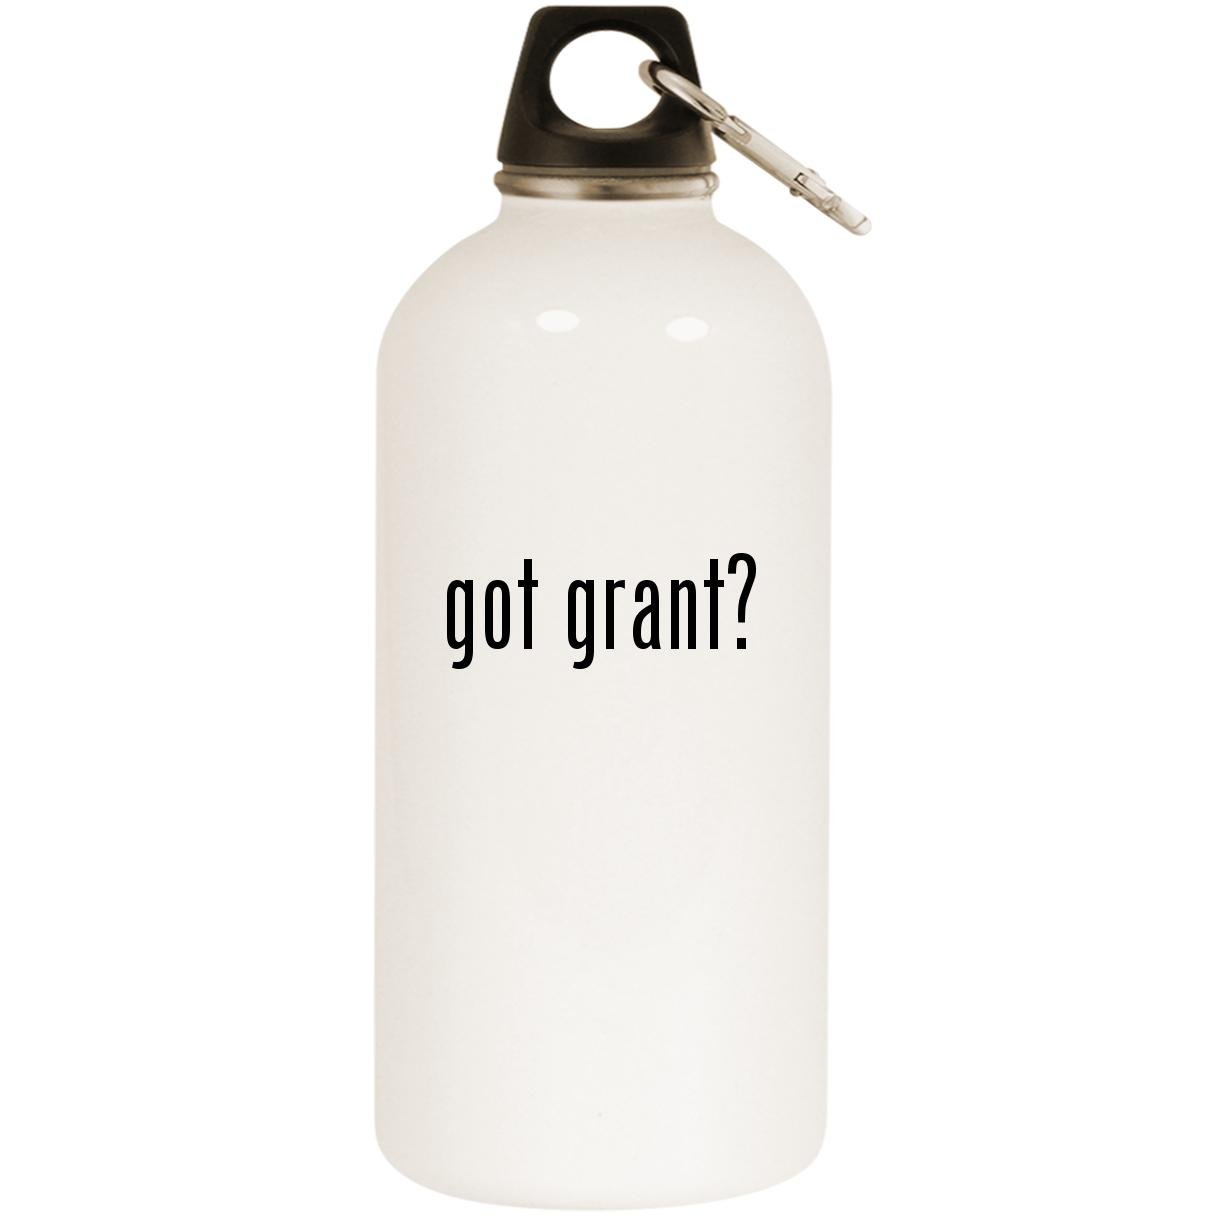 got grant? - White 20oz Stainless Steel Water Bottle with Carabiner